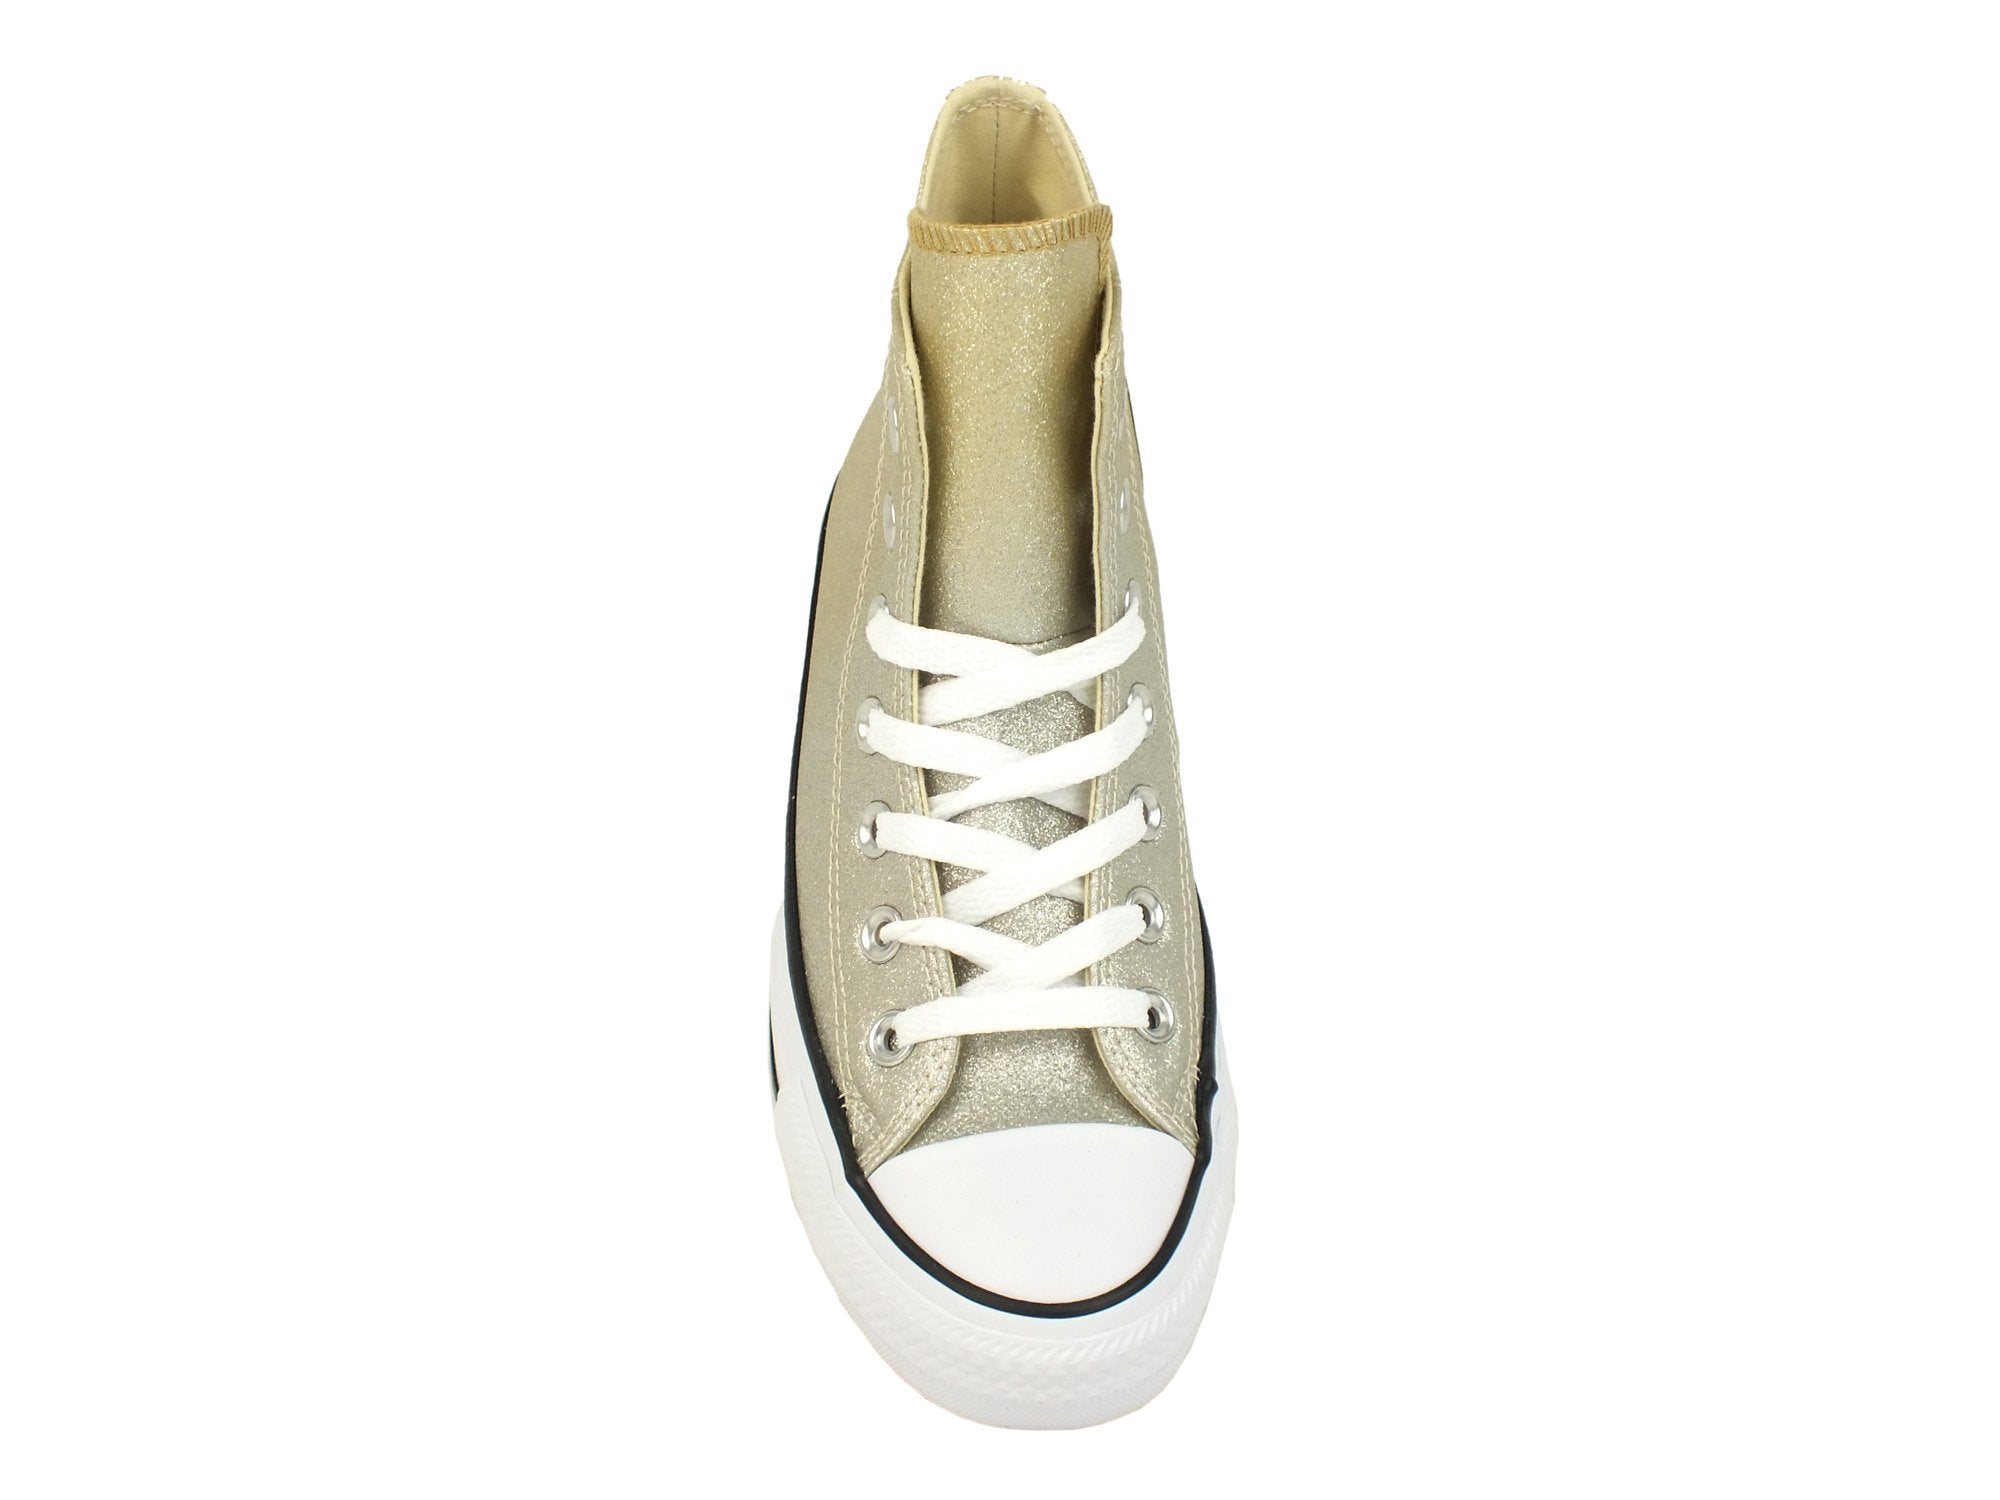 CONVERSE All Star Sneakers Light Gold 159601C